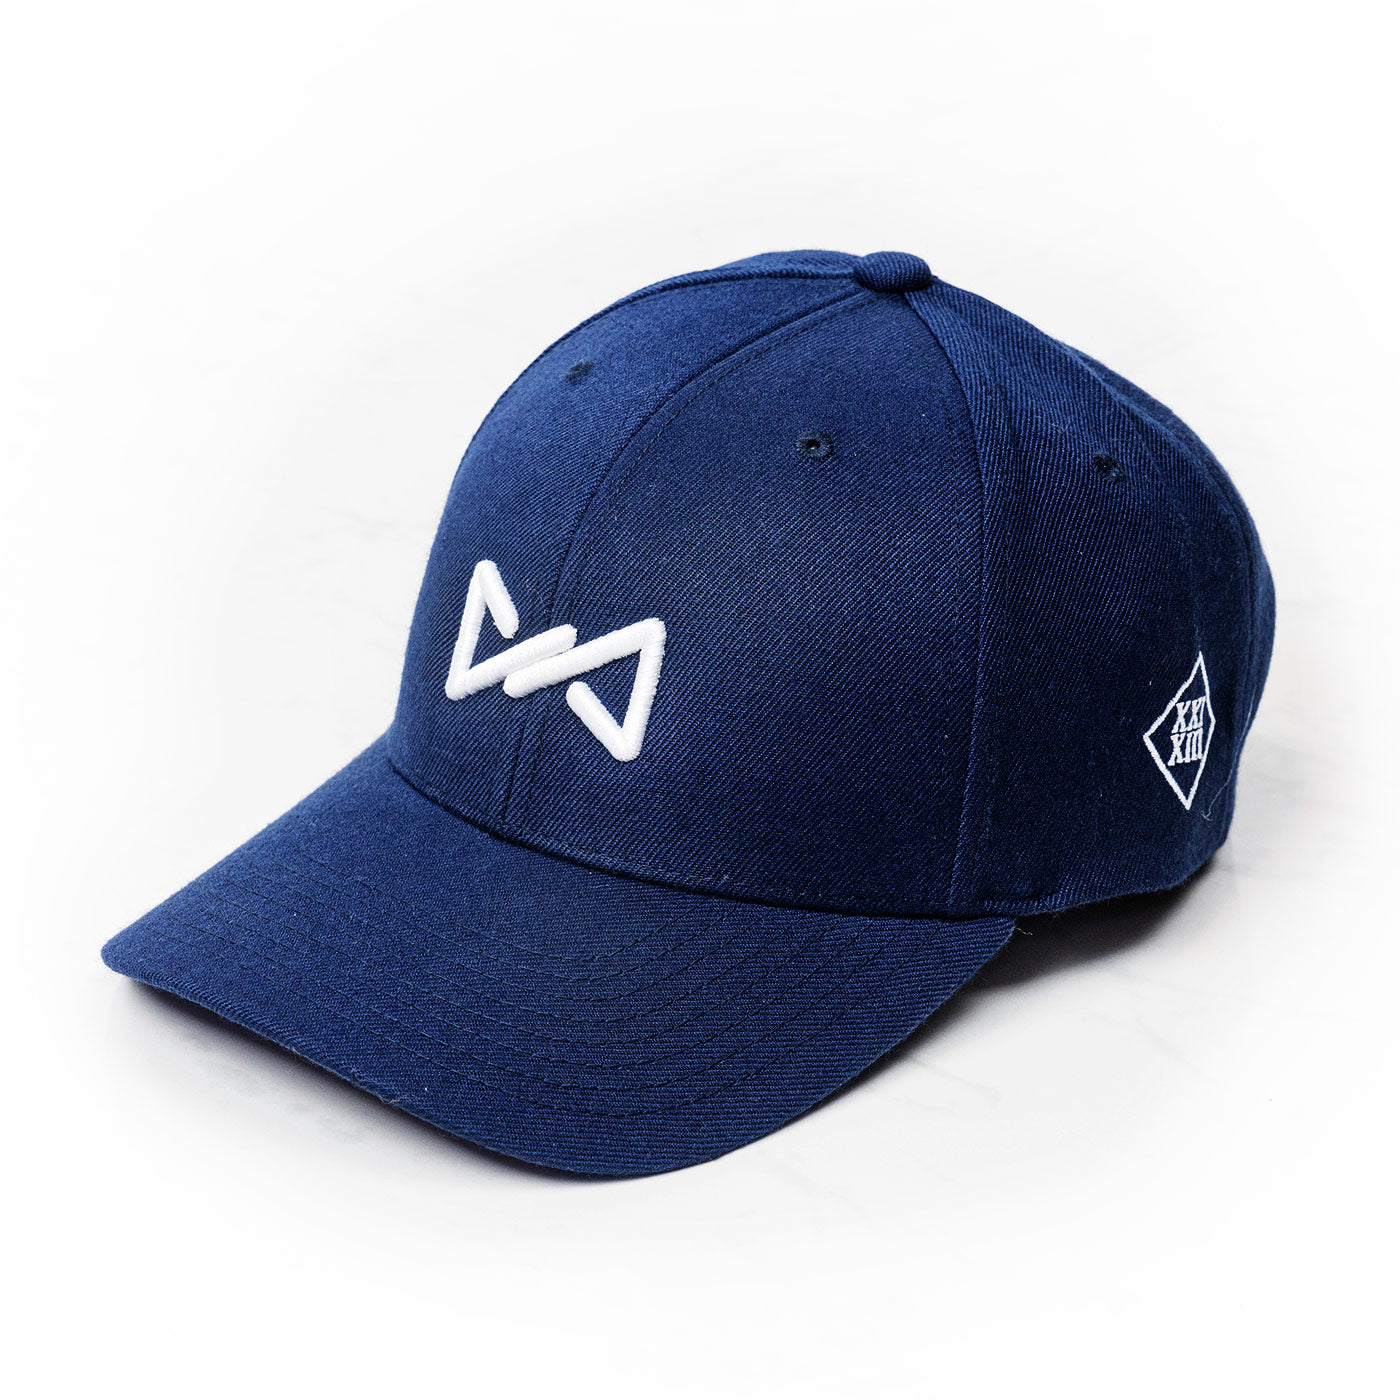 DaddyCap snapback white on dark blue